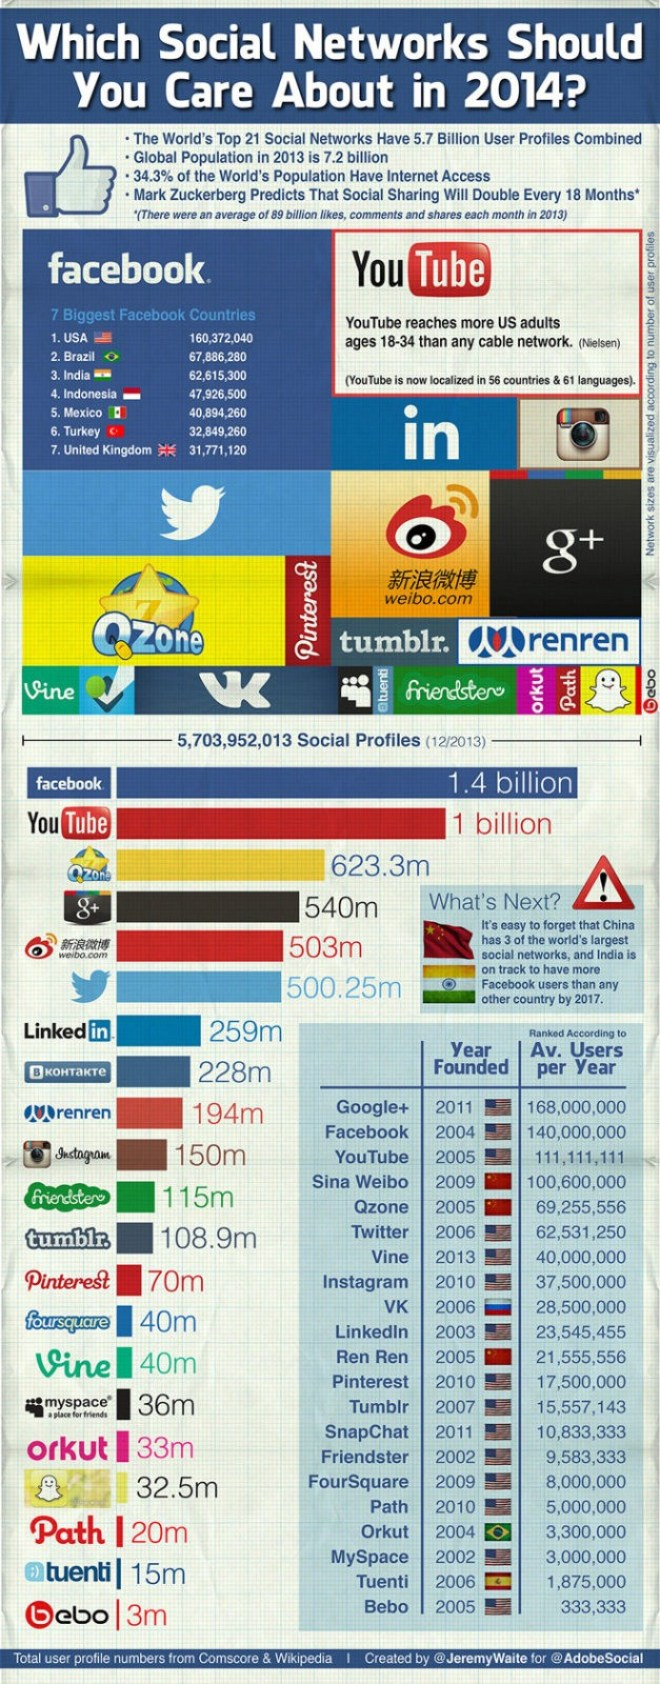 What Social Networks Should You Use in 2014? - INFOGRAPHIC